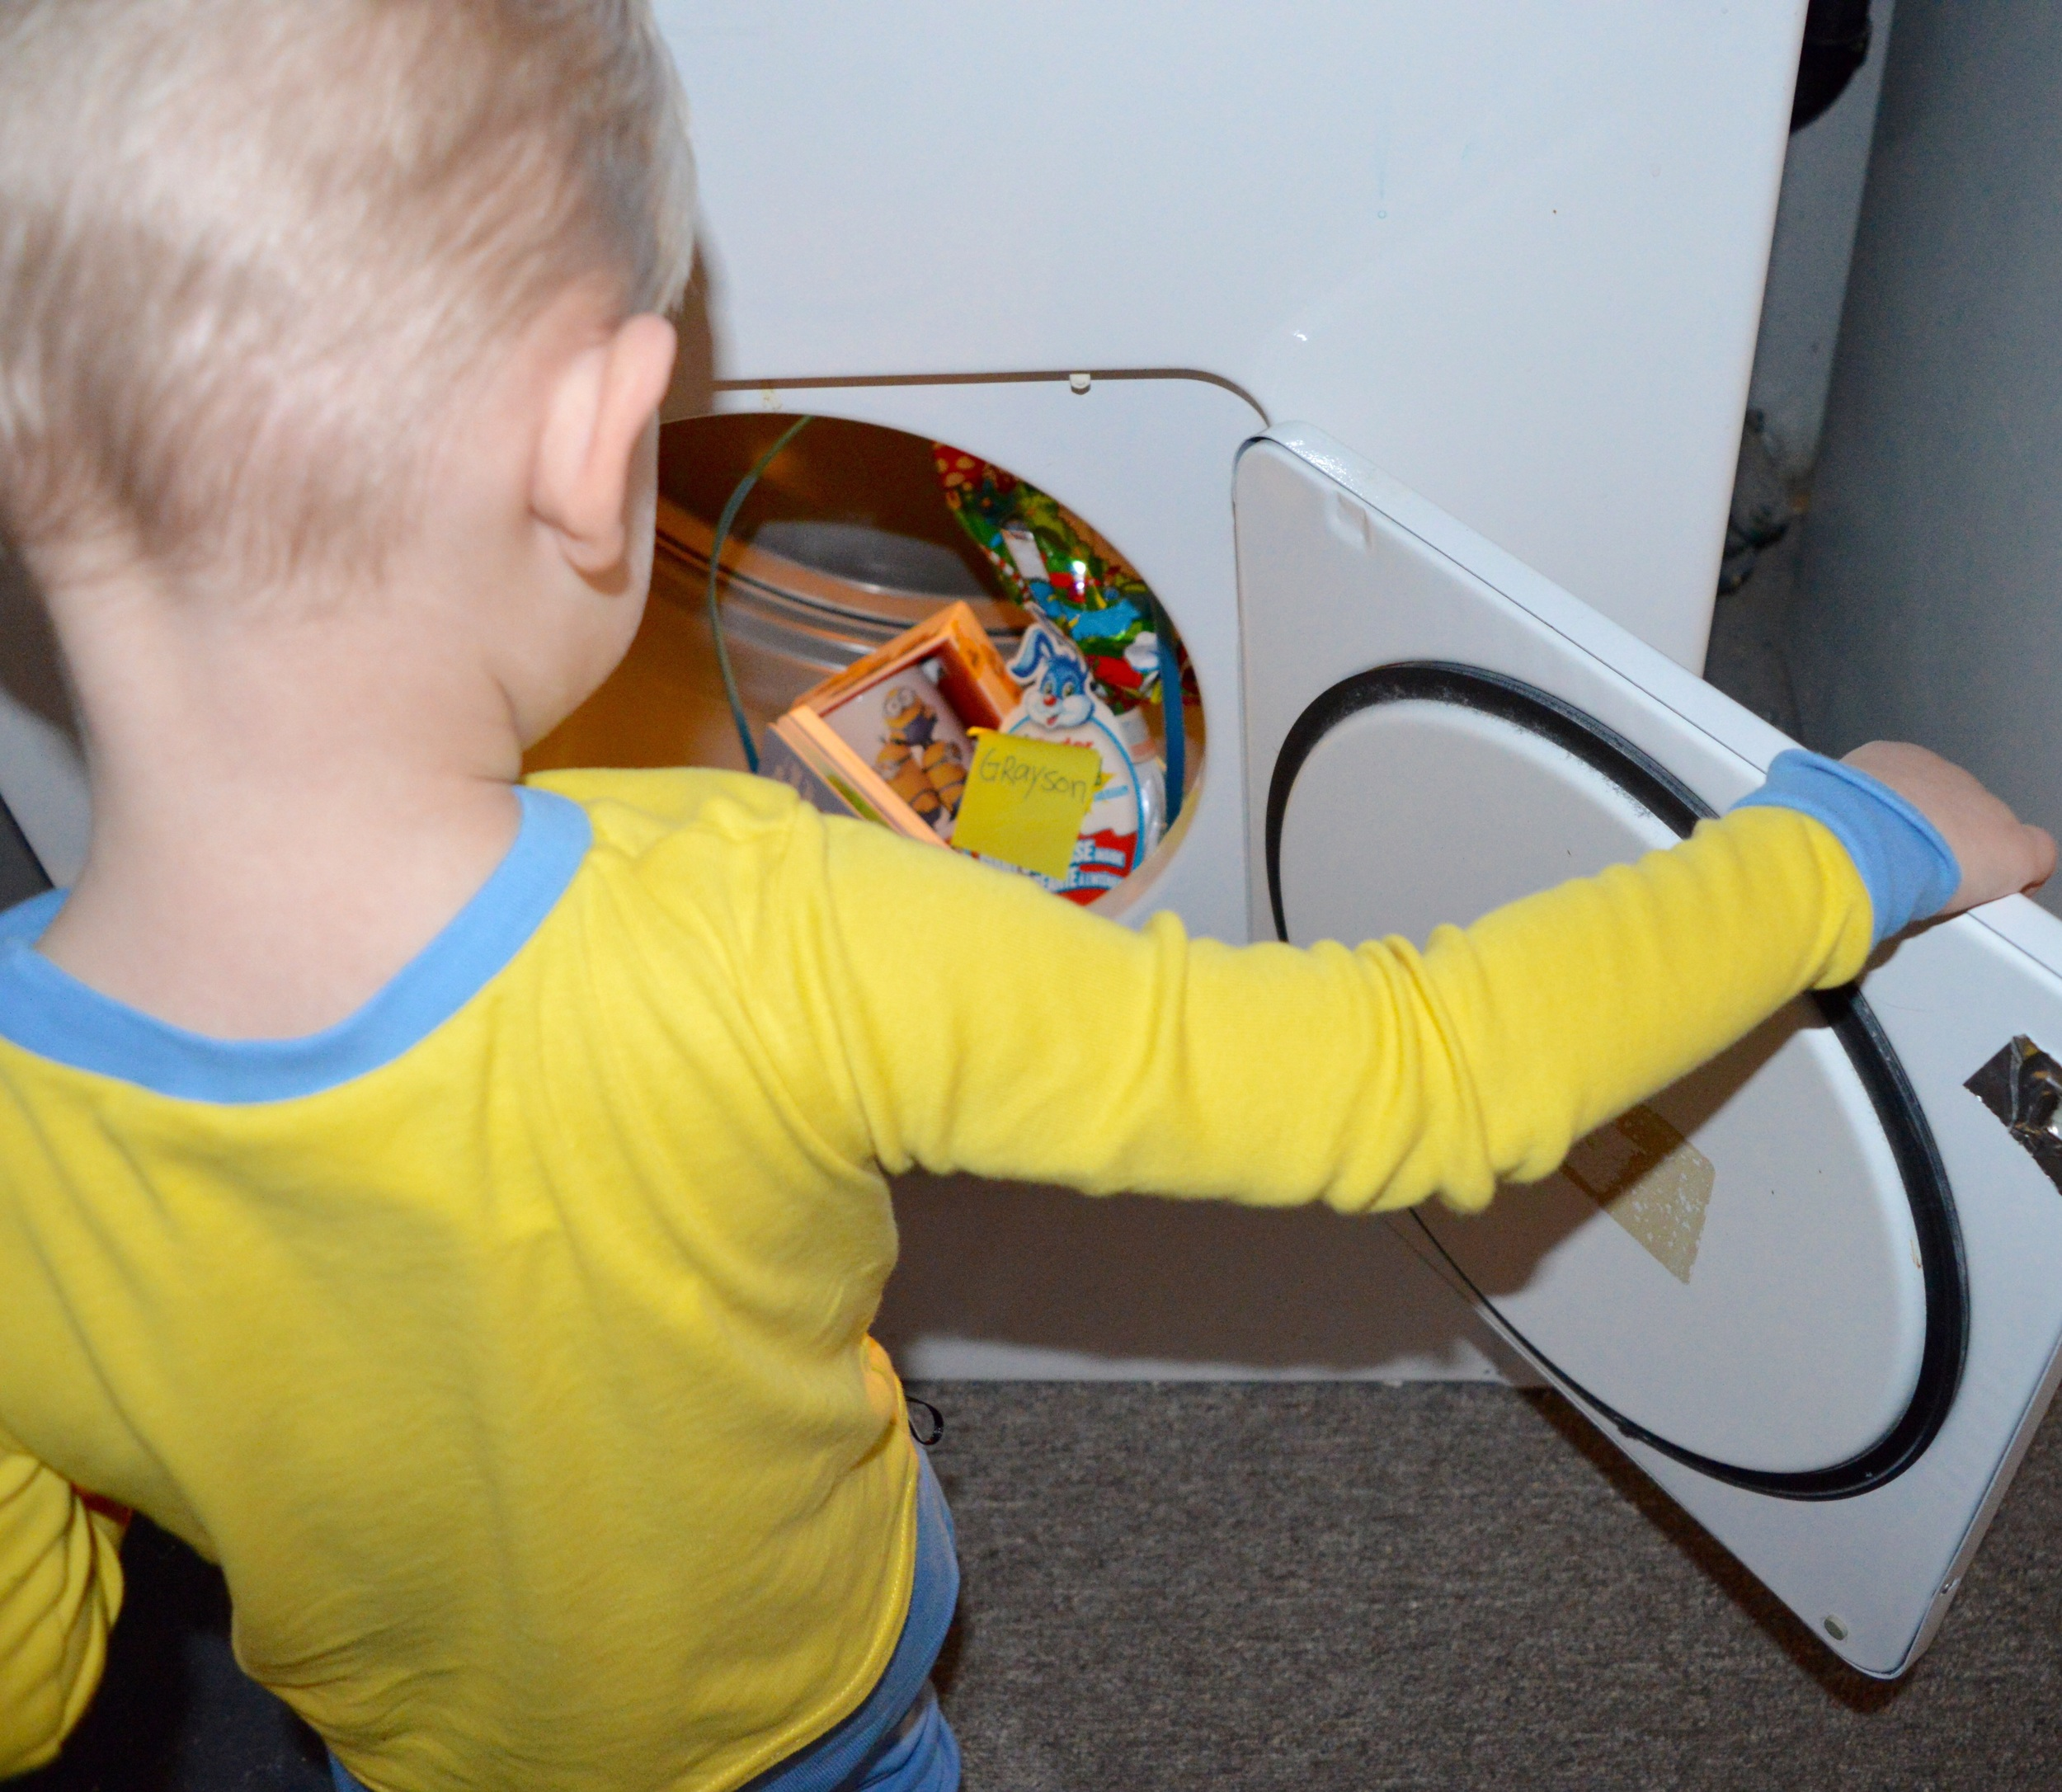 Finding his basket in the dryer! He was so happy! He got his own minions cup for hot chocolate a new book and his favourite things right now in the large size- kinder egg surprise!!